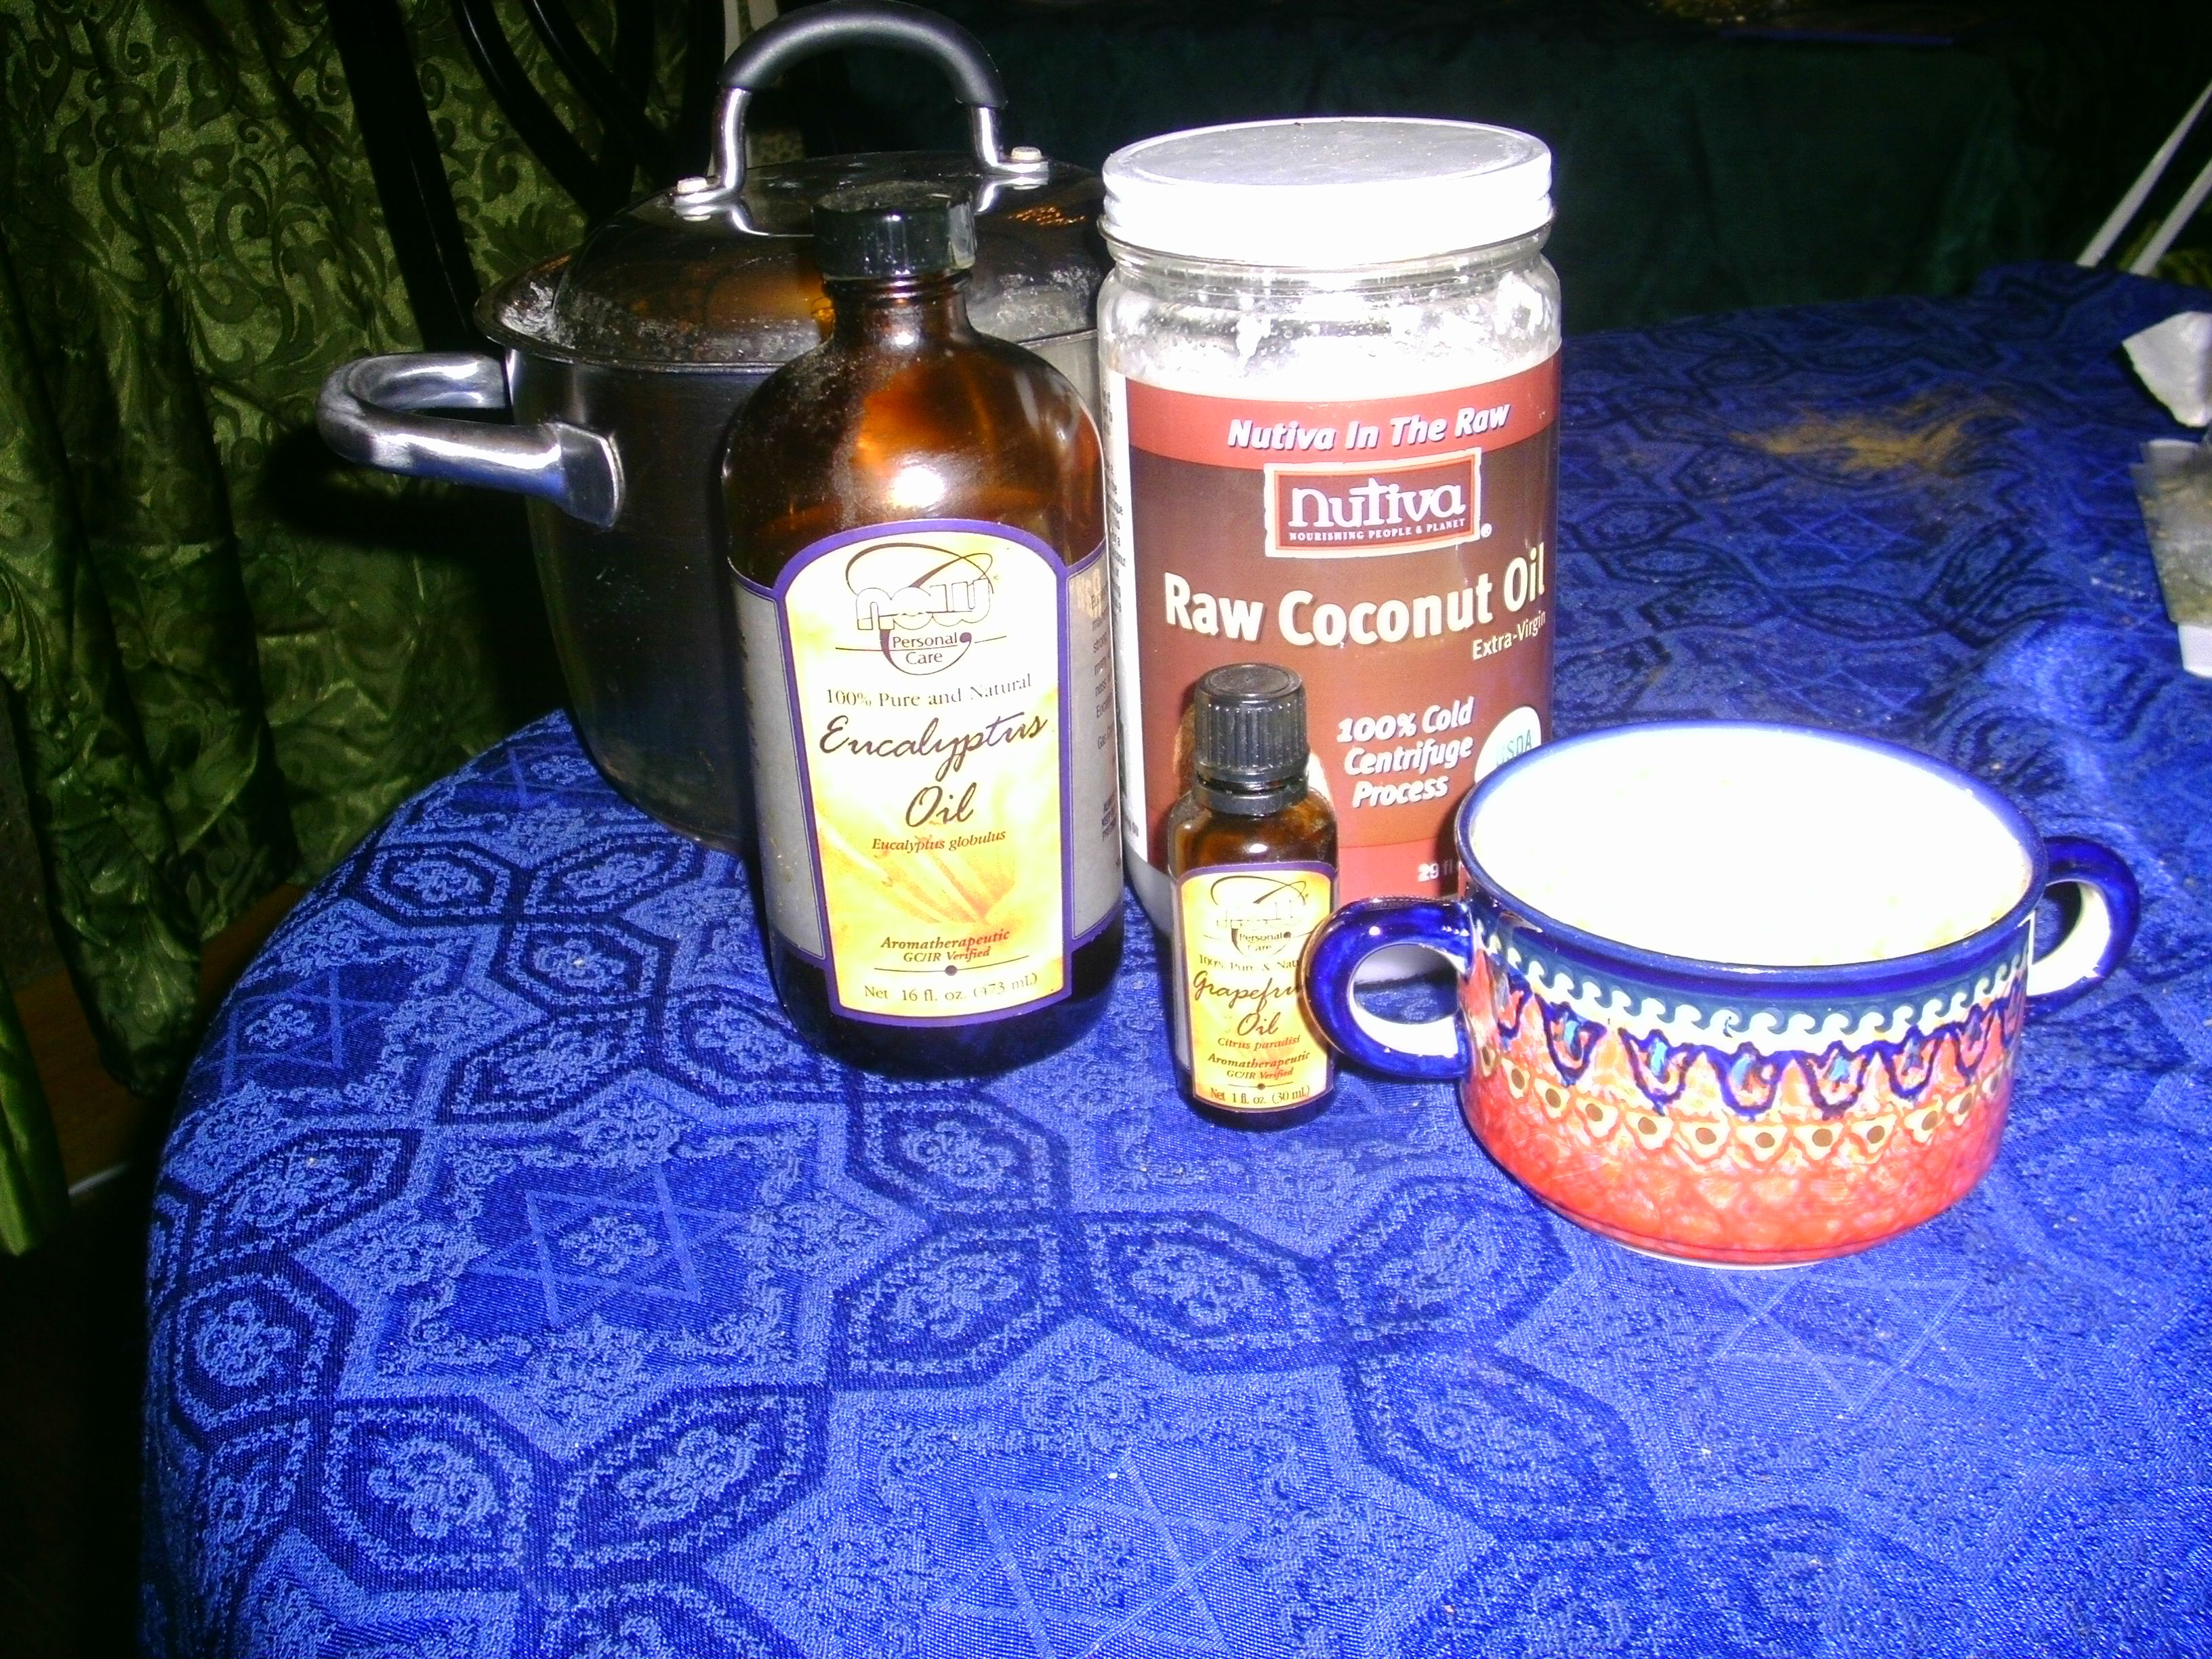 Make Tiger Balm at Home: from - http://www.acupuncturebrooklyn.com/alternative-health/making-your-own-tiger-balm